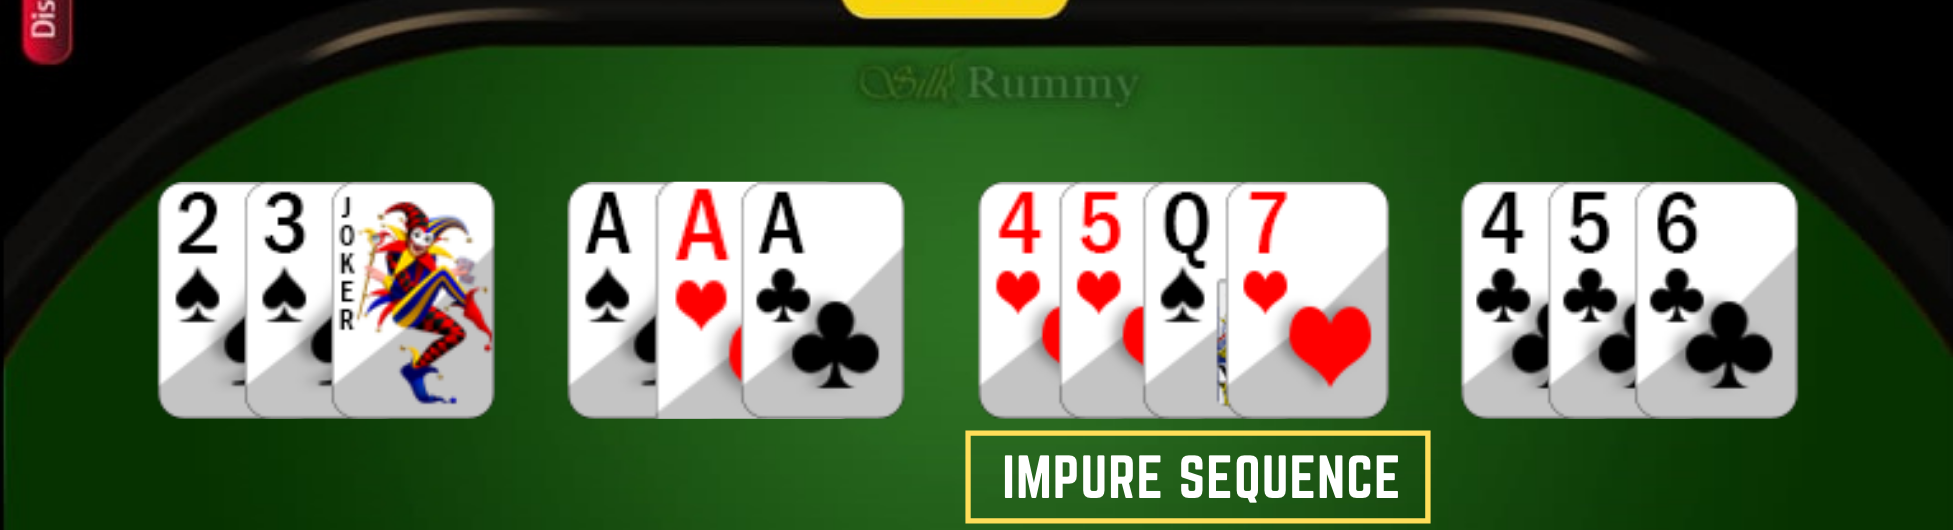 How to Play Rummy- Learn Rummy Rules- Rummy Impure Sequence with wild card joker